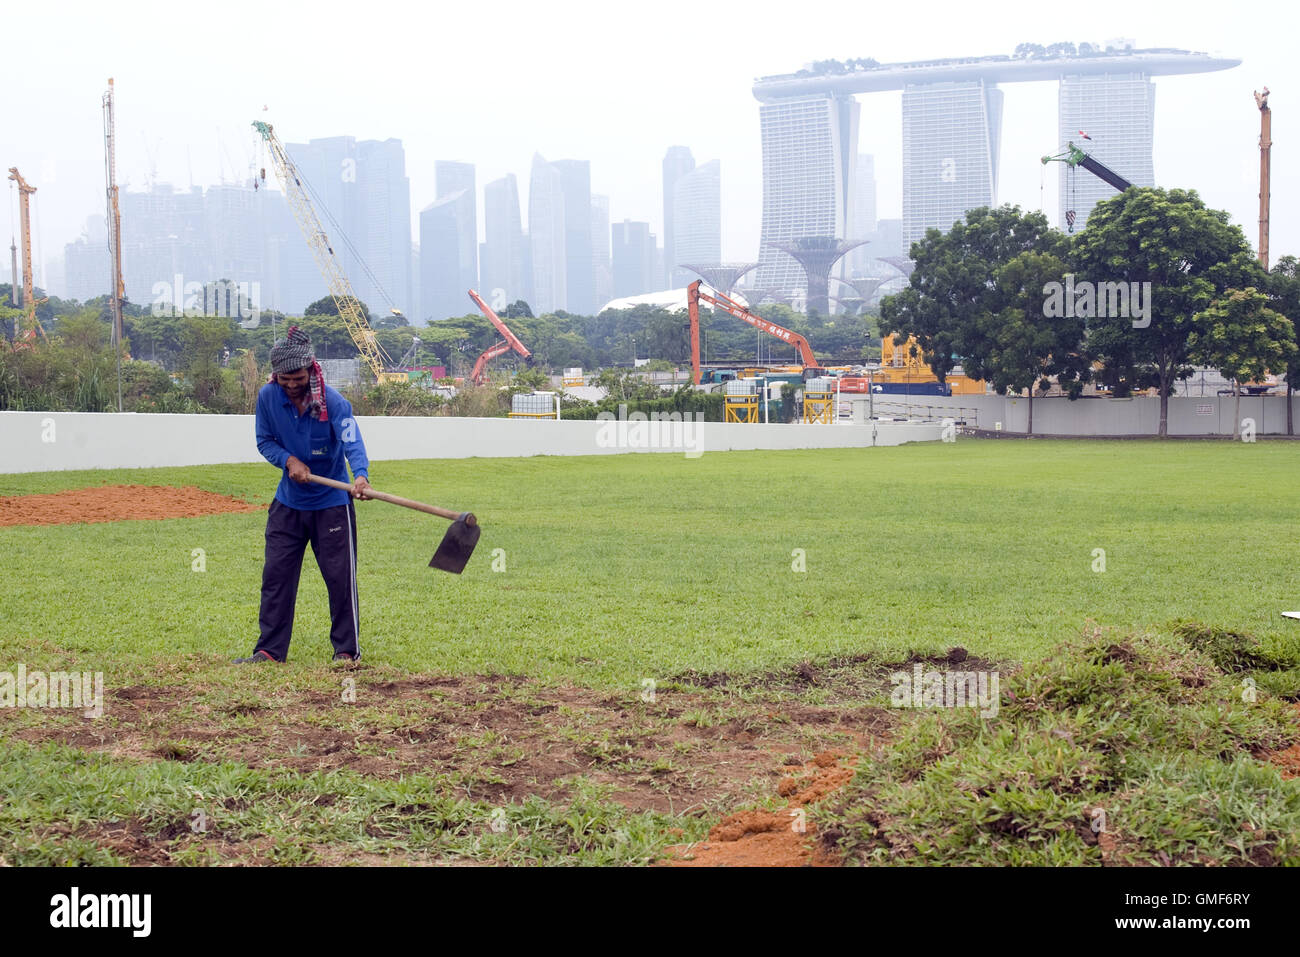 Singapore. 26th Aug, 2016. A gardener works in Singapore's Marina Bay area, on Aug. 26, 2016. The three-hour - Stock Image